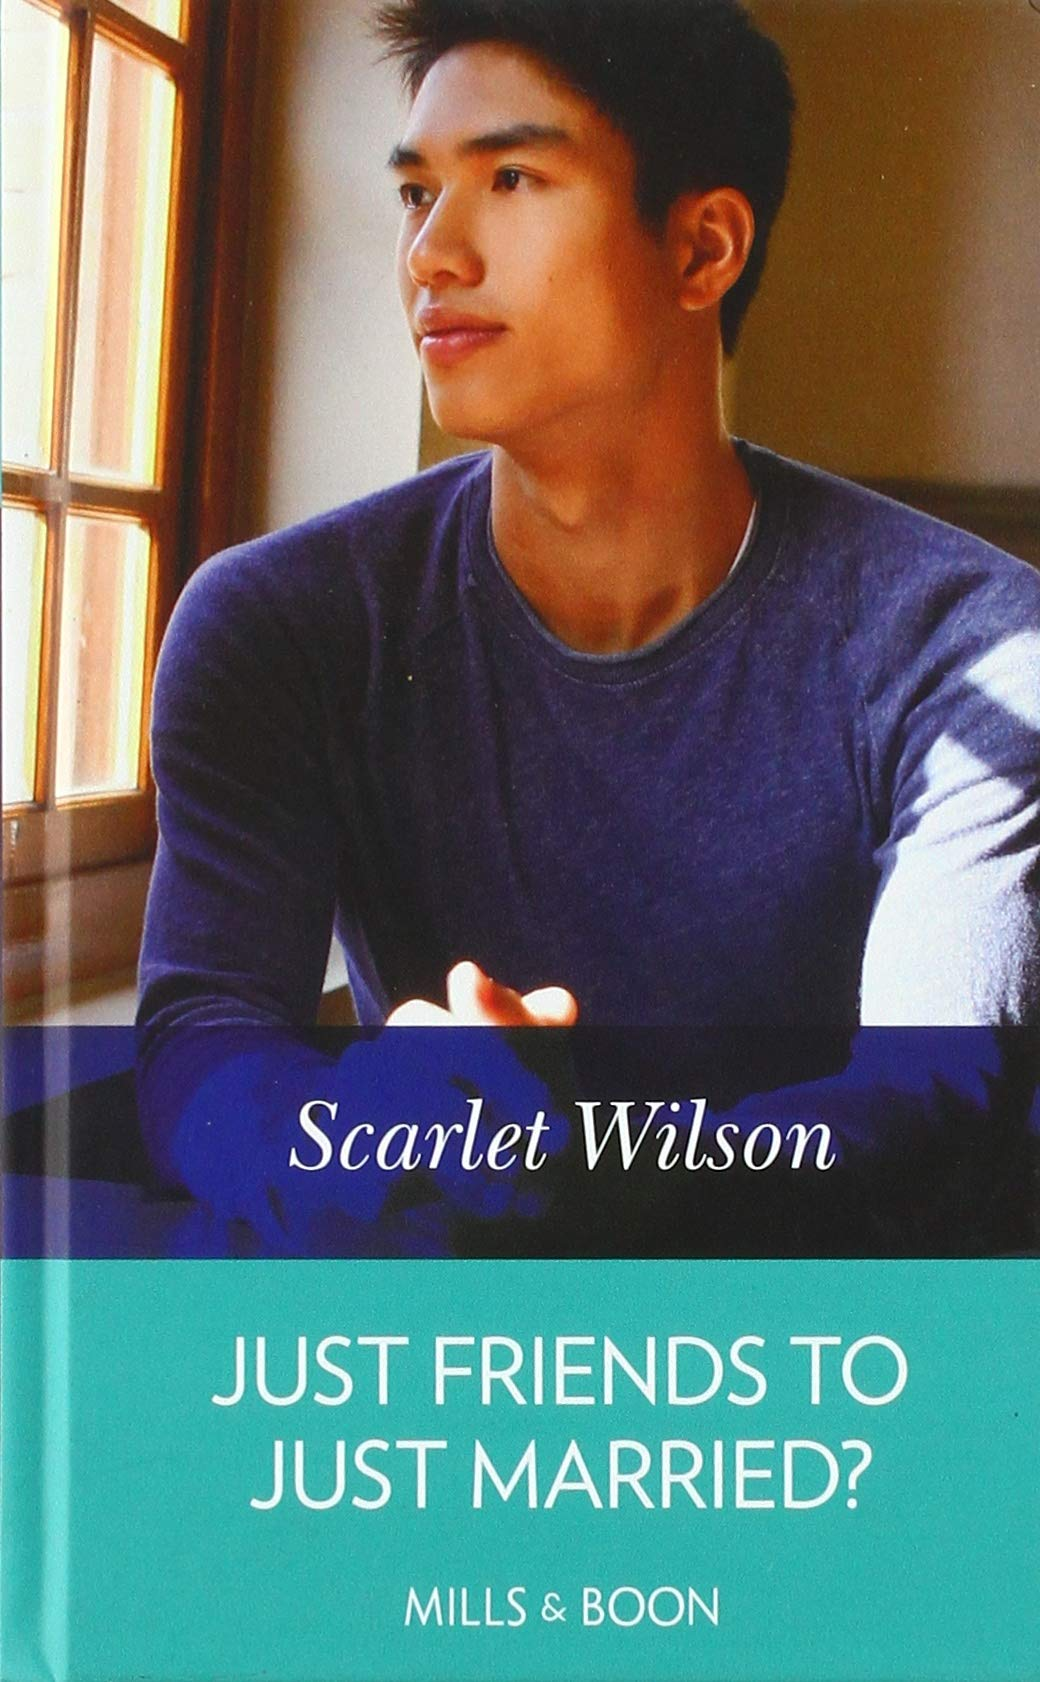 Just Friends To Just Married? by Mills and Boon